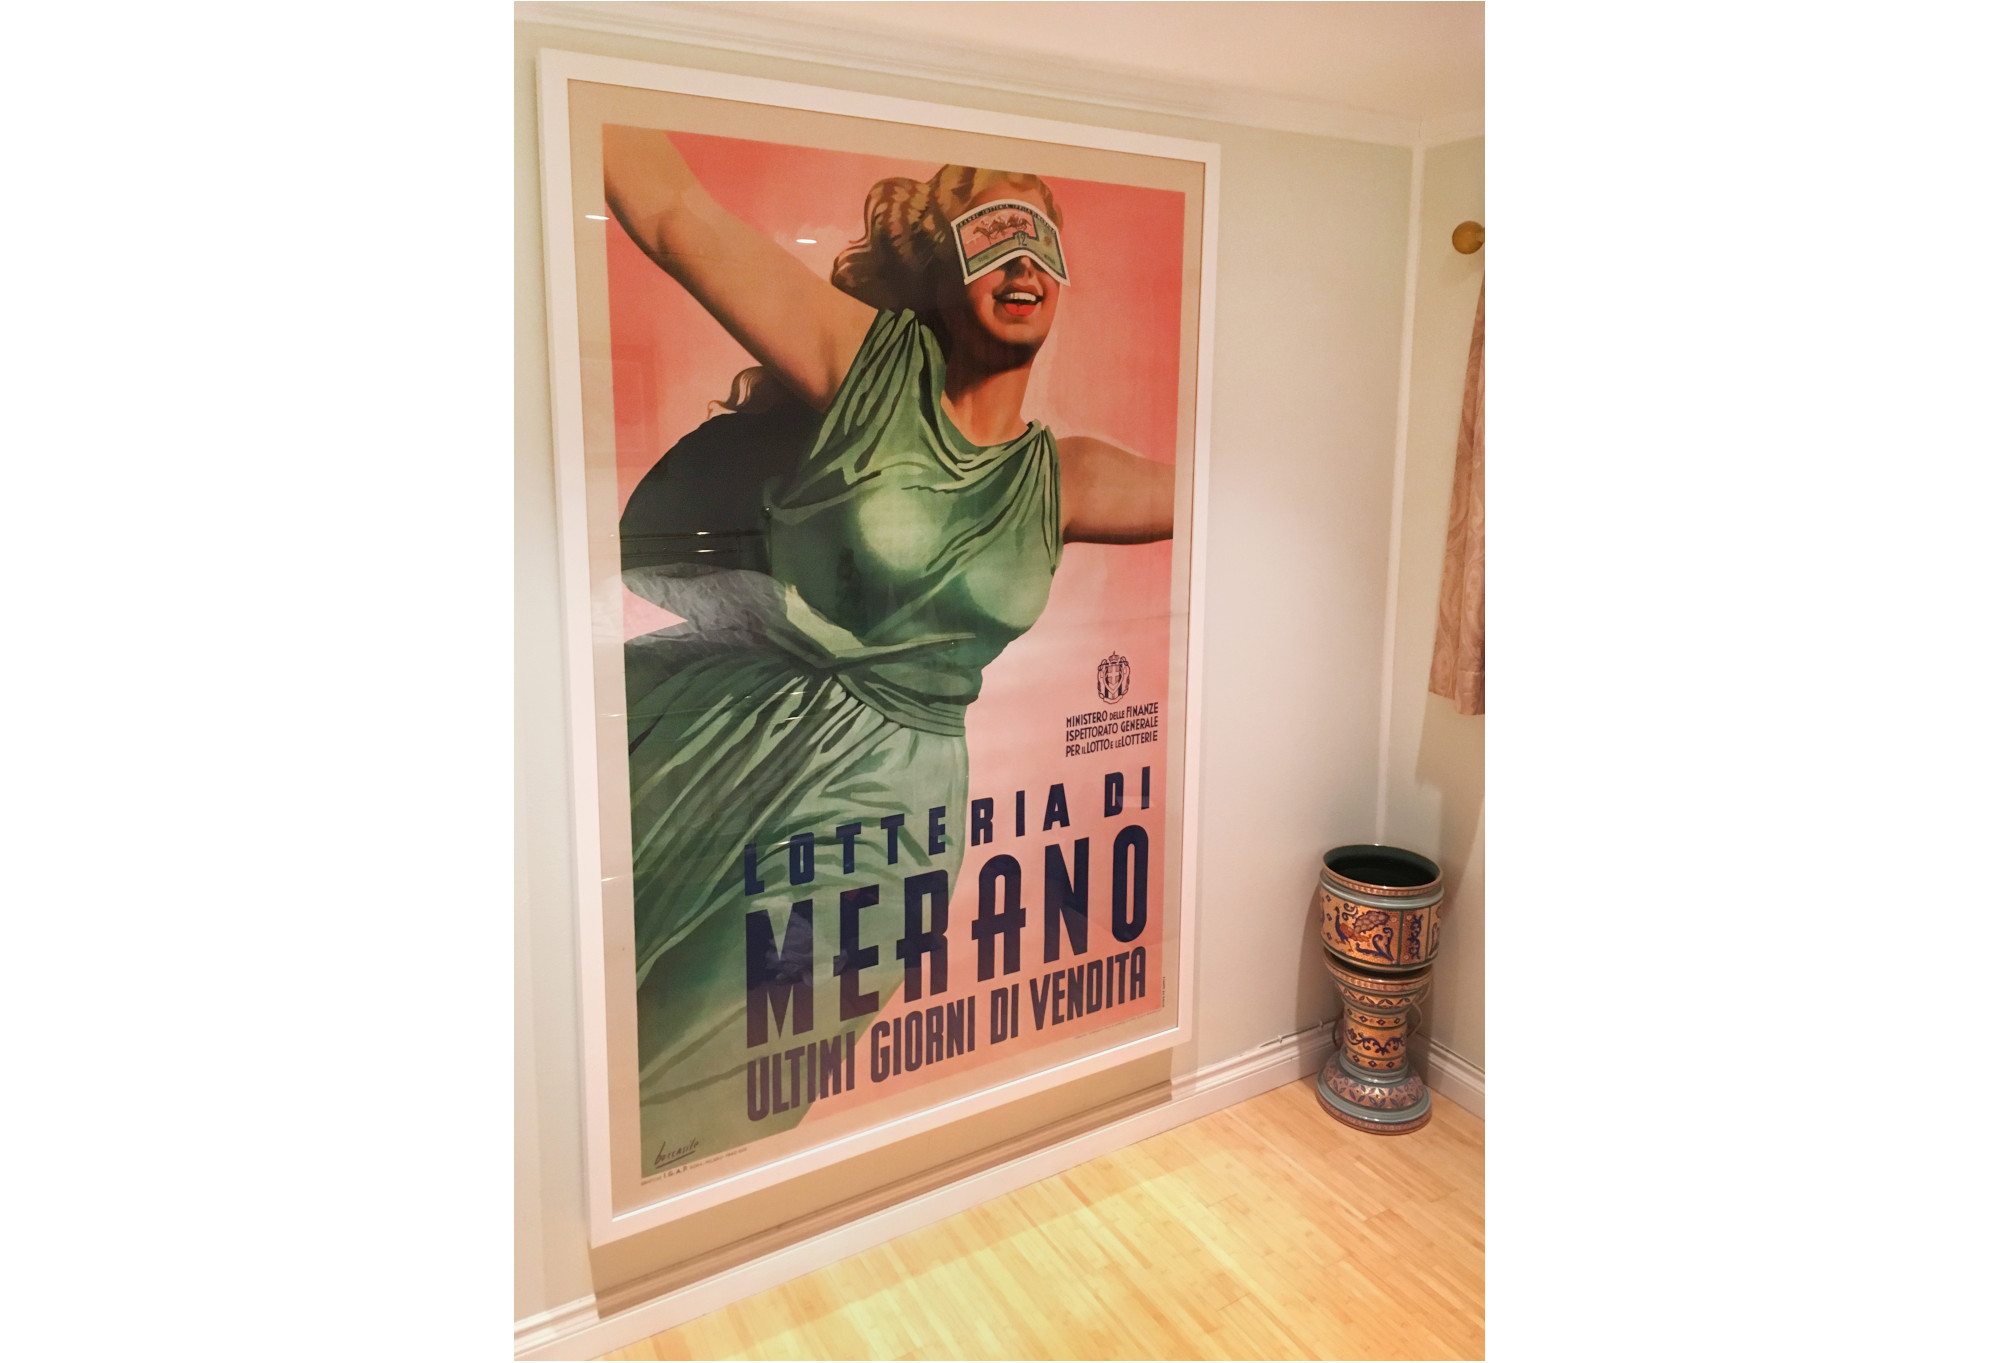 large framed poster in hallway with blindfolded woman in green dress; pink, green, yellow, white